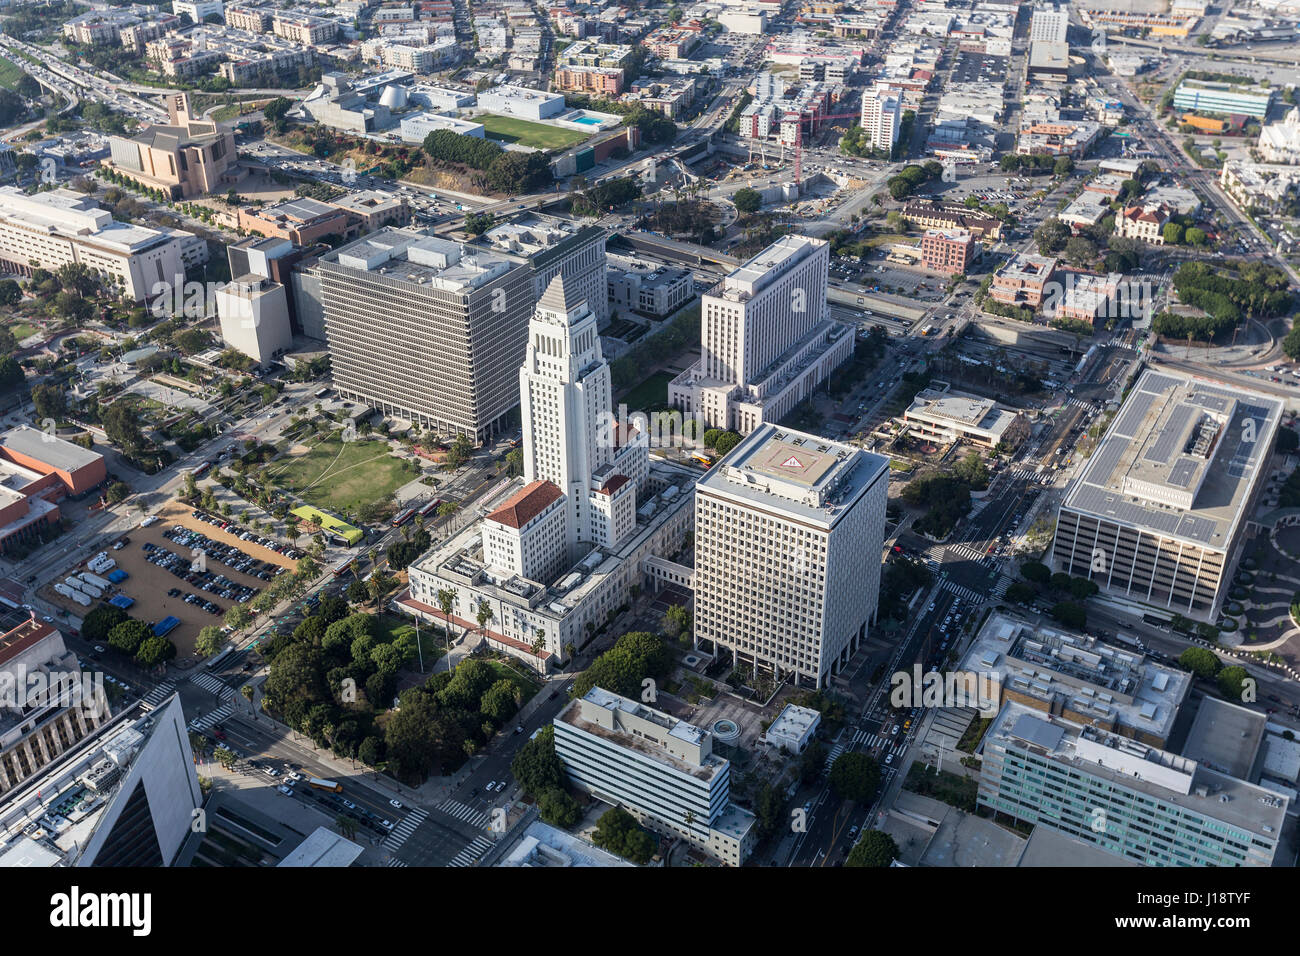 Afternoon aerial view of Los Angeles Civic Center and City Hall buildings. - Stock Image